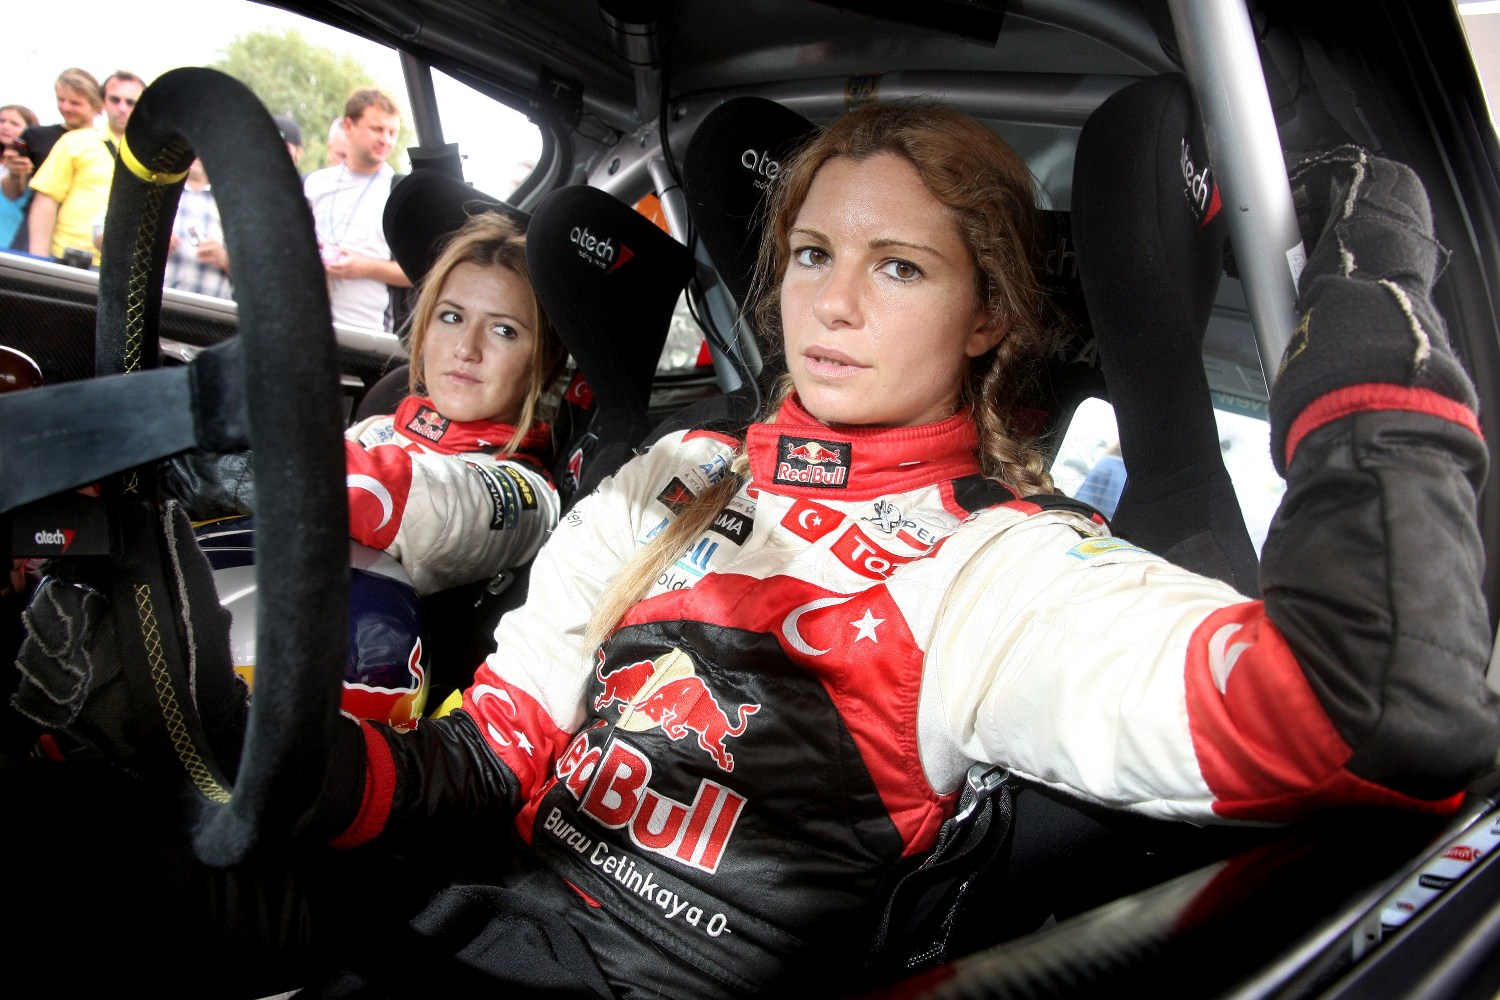 Movie about female race car driver